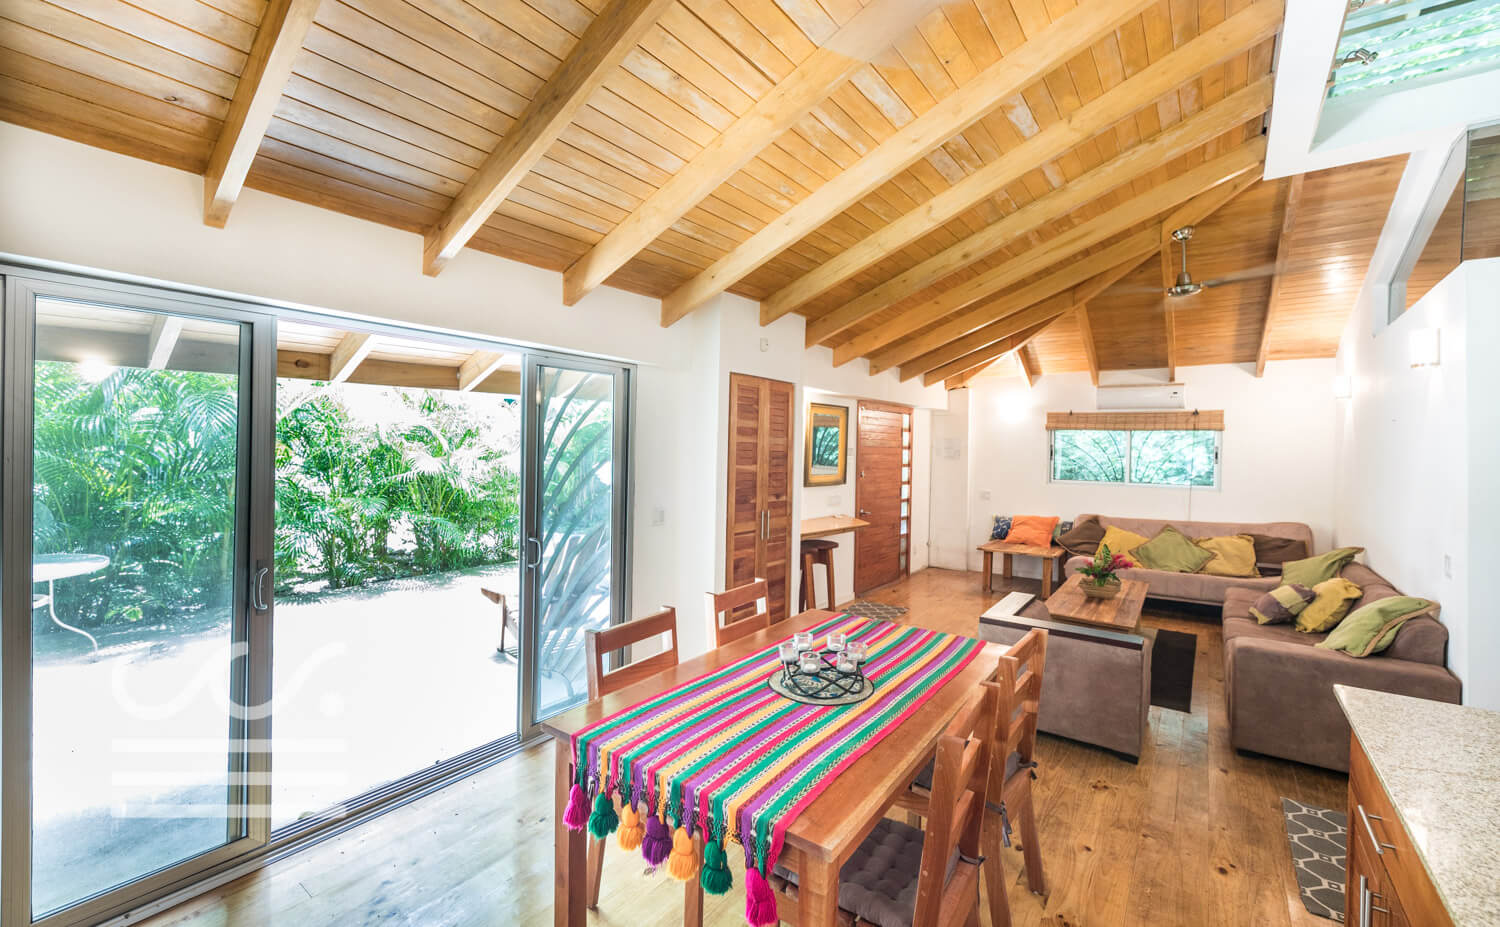 Casa-Luca-Wanderlust-Realty-Real-Estate-Retals-Nosara-Costa-Rica-50compressed.jpg